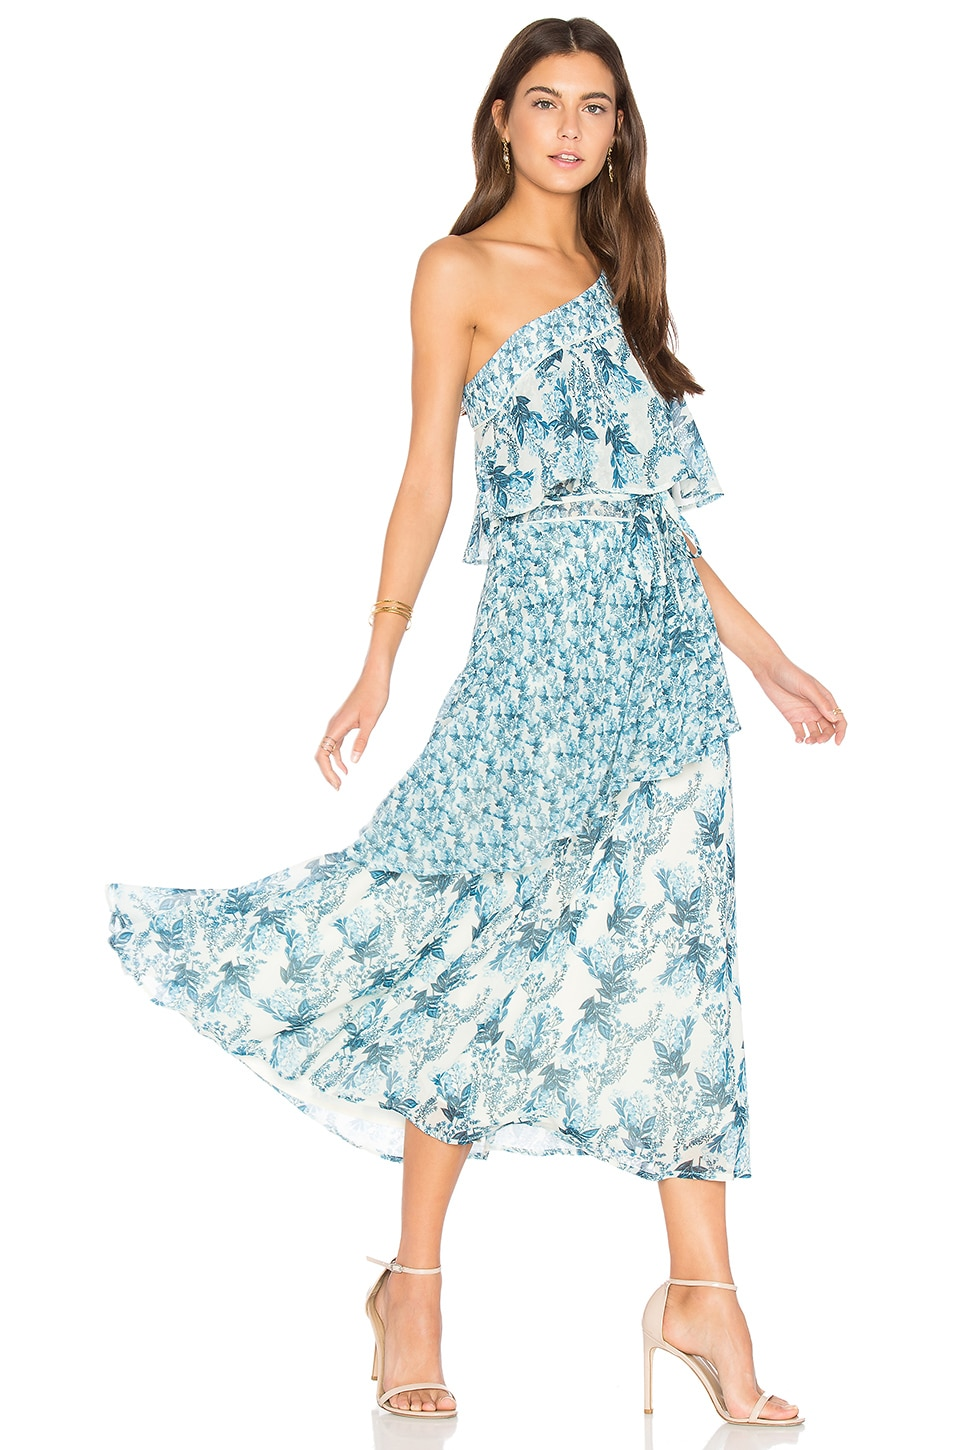 Iris Flutter Dress by We Are Kindred